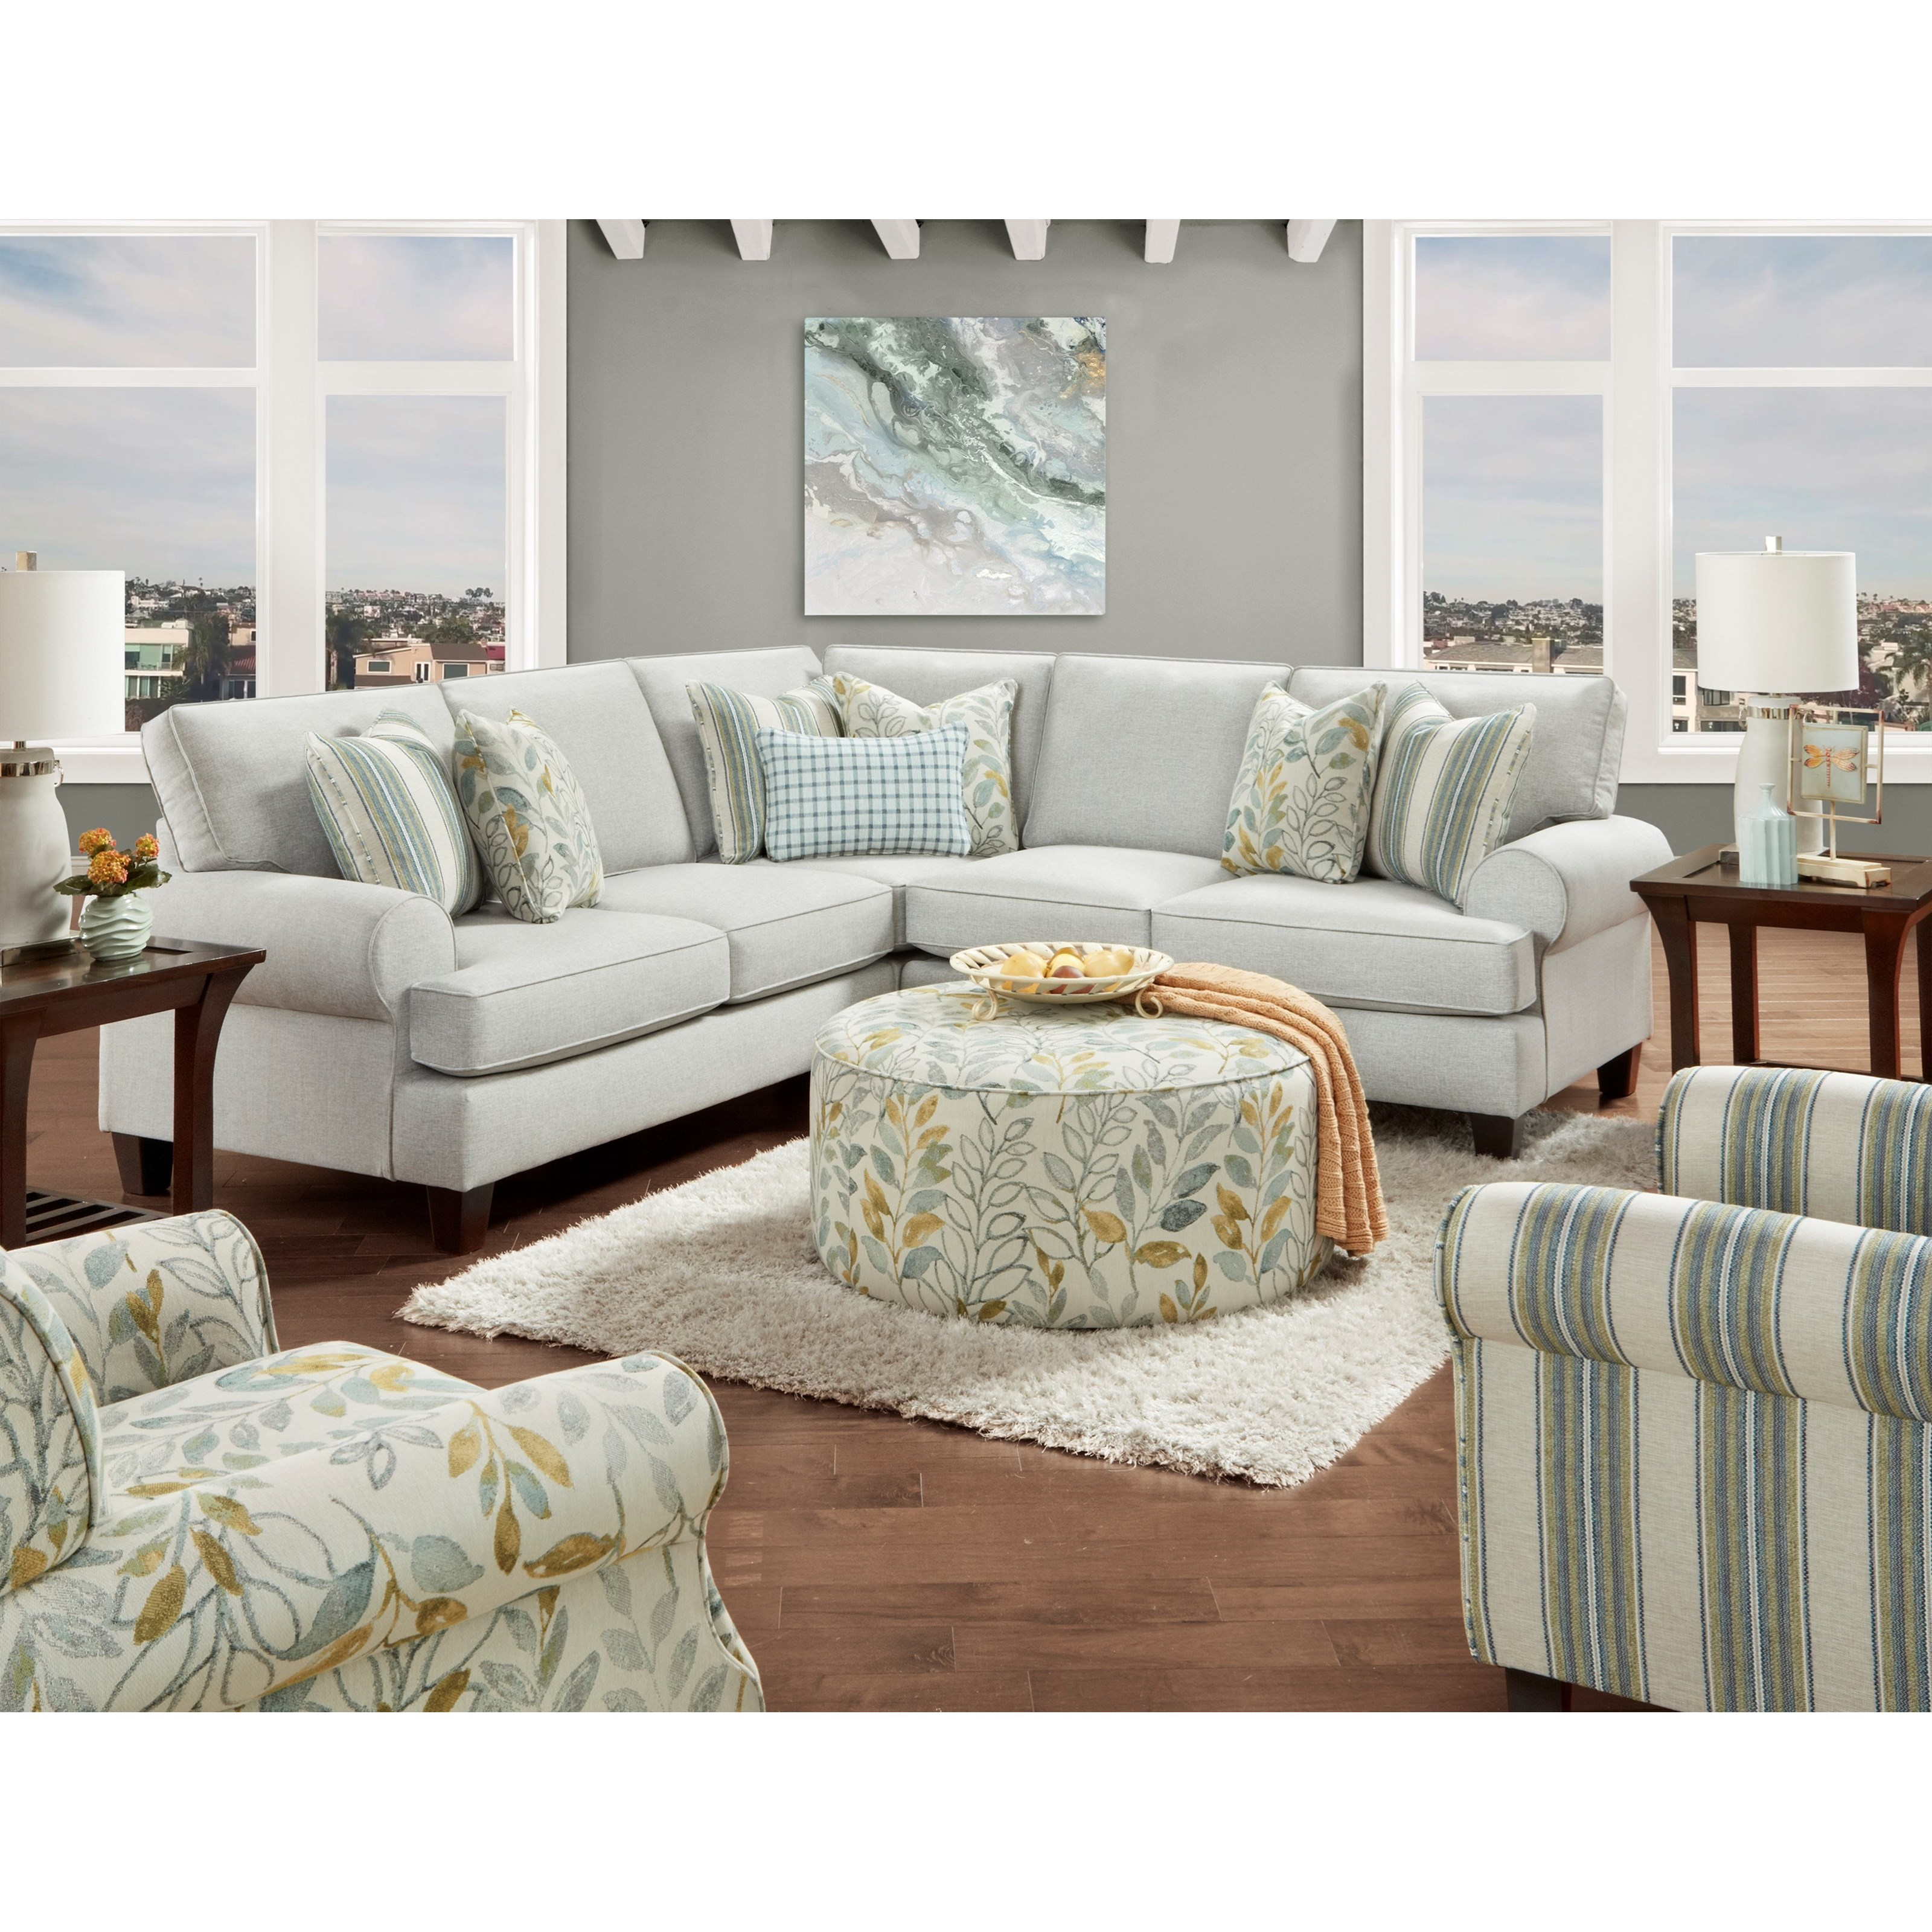 L Shaped Sectional With Reversible Cushions